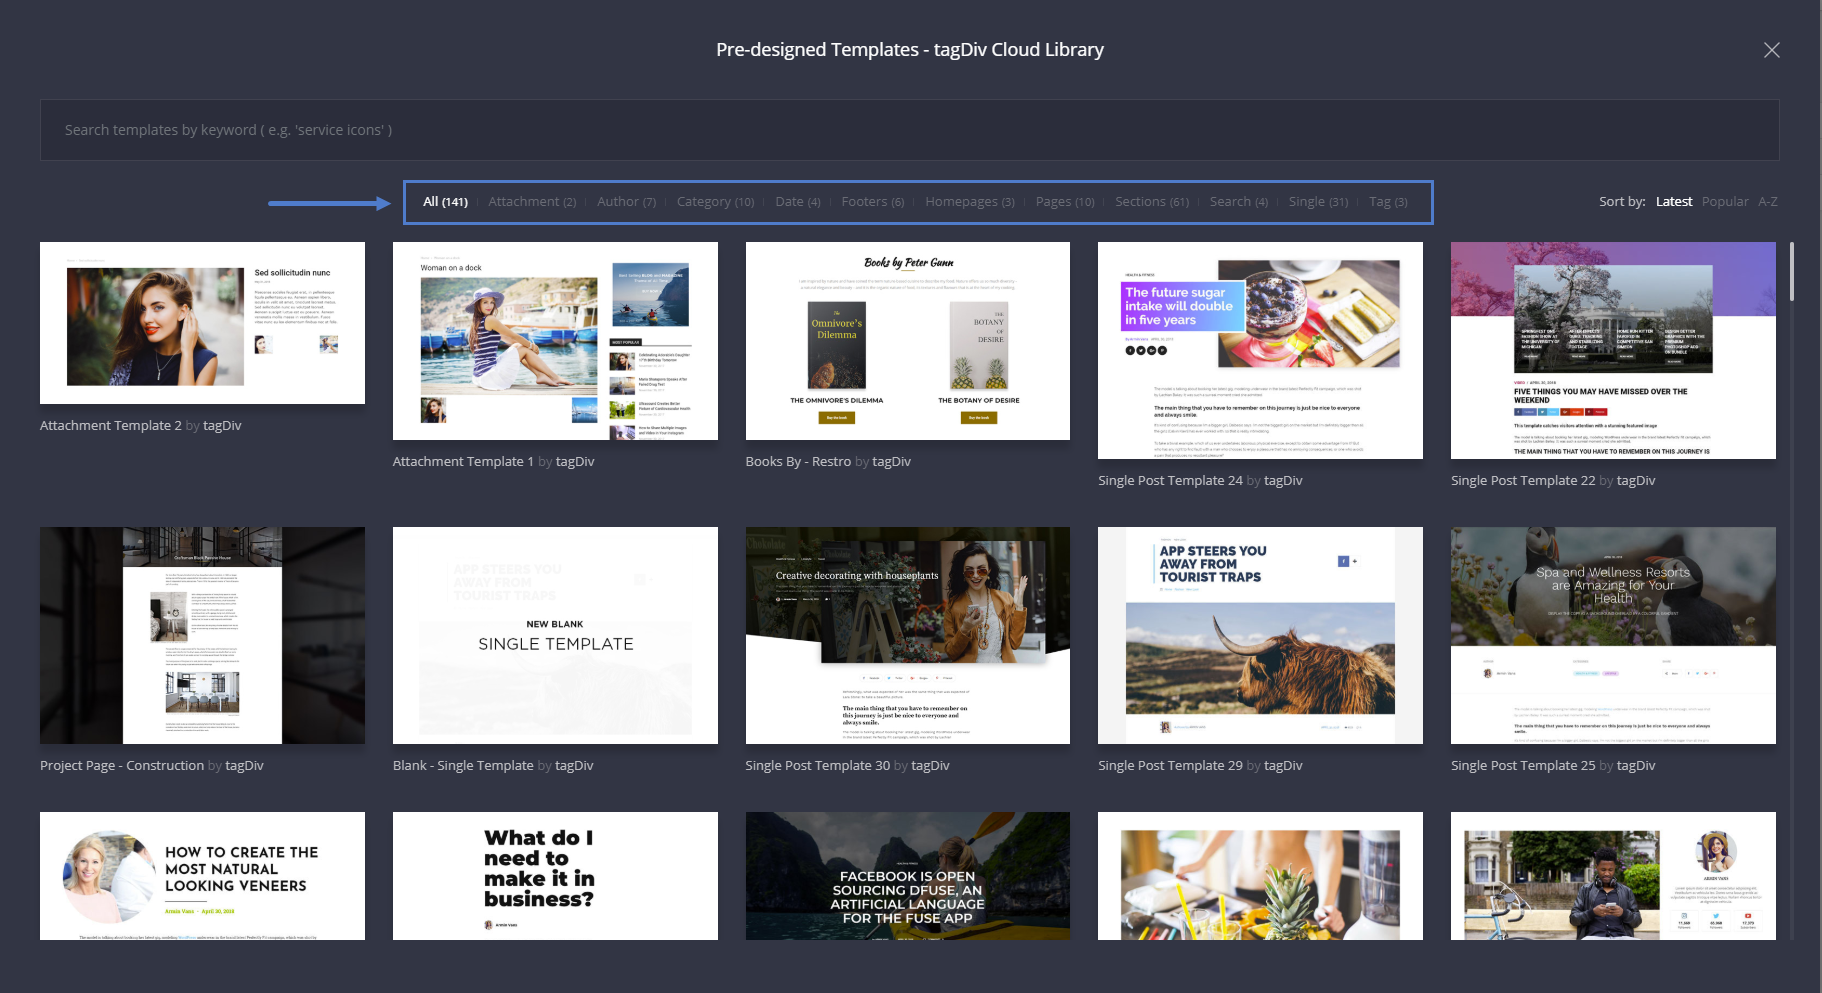 tagDiv Cloud Library - Templates